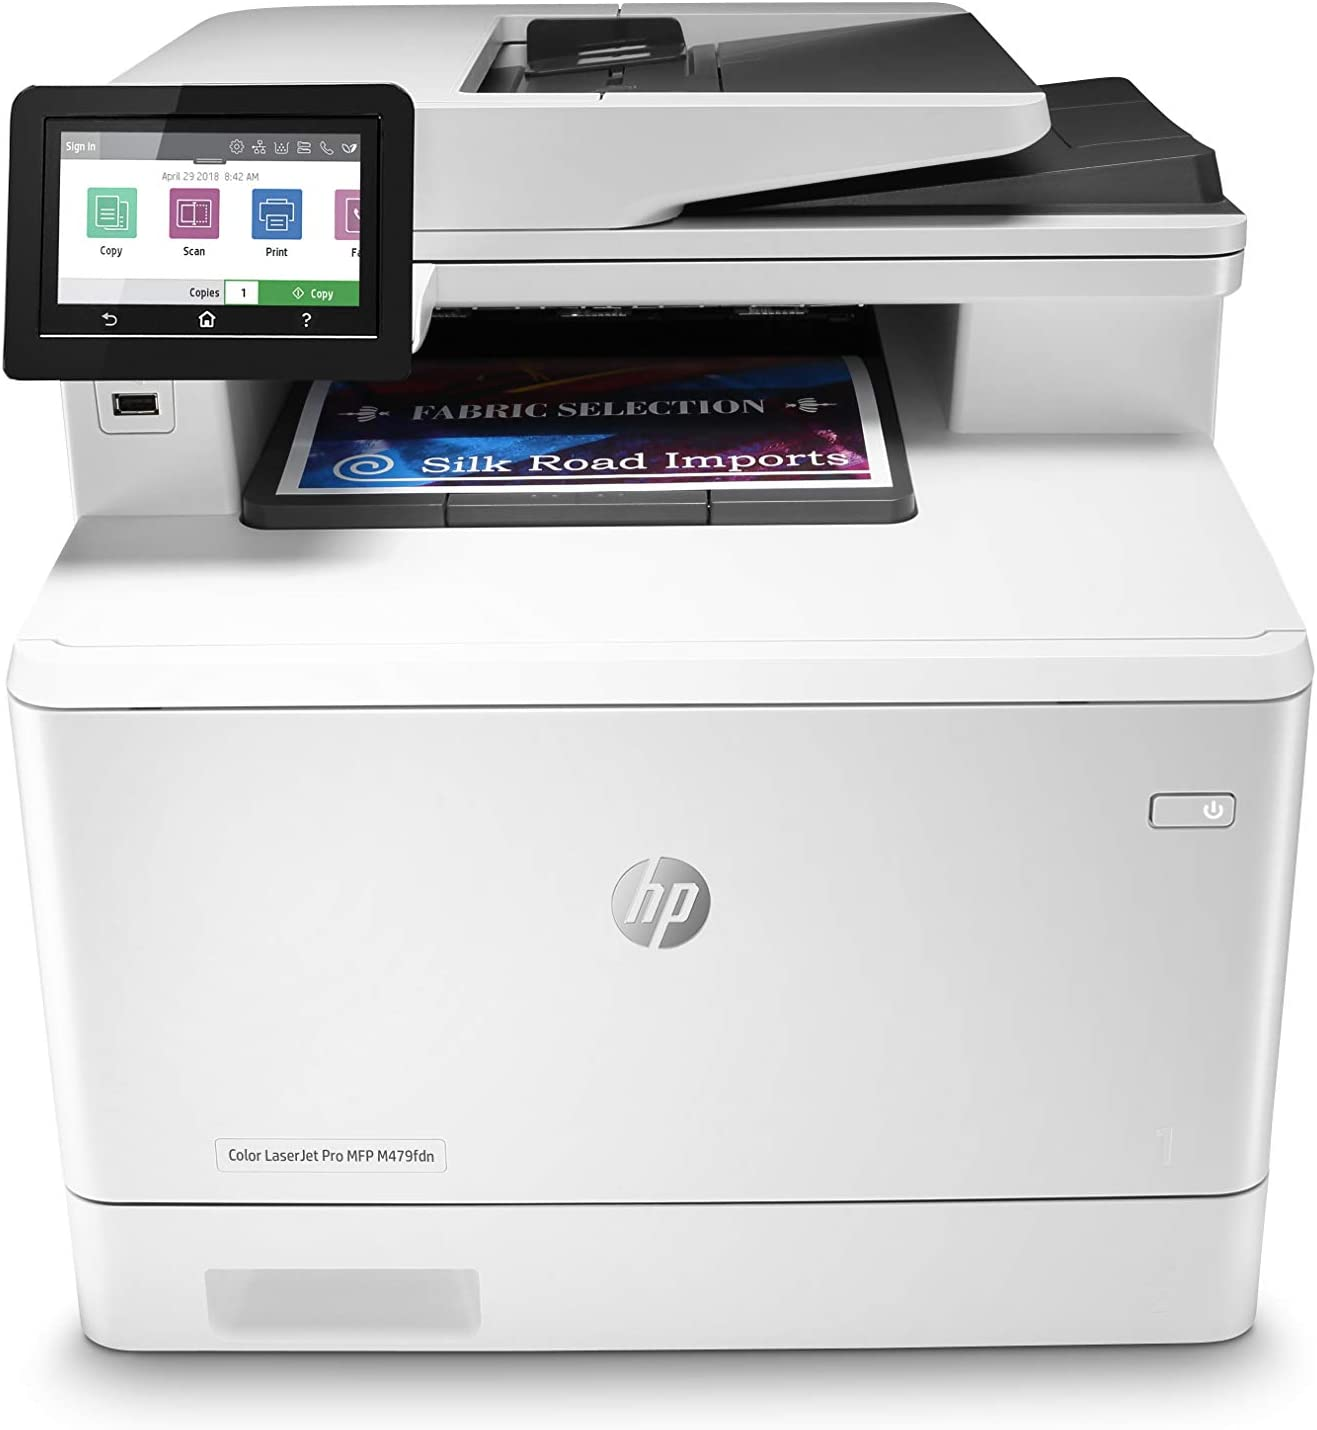 HP Color LaserJet Pro Multifunction M479fdn Laser Printer with One-Year, Next-Business Day, Onsite Warranty & Amazon Dash Replenishment ready (W1A79A) – Ethernet Only